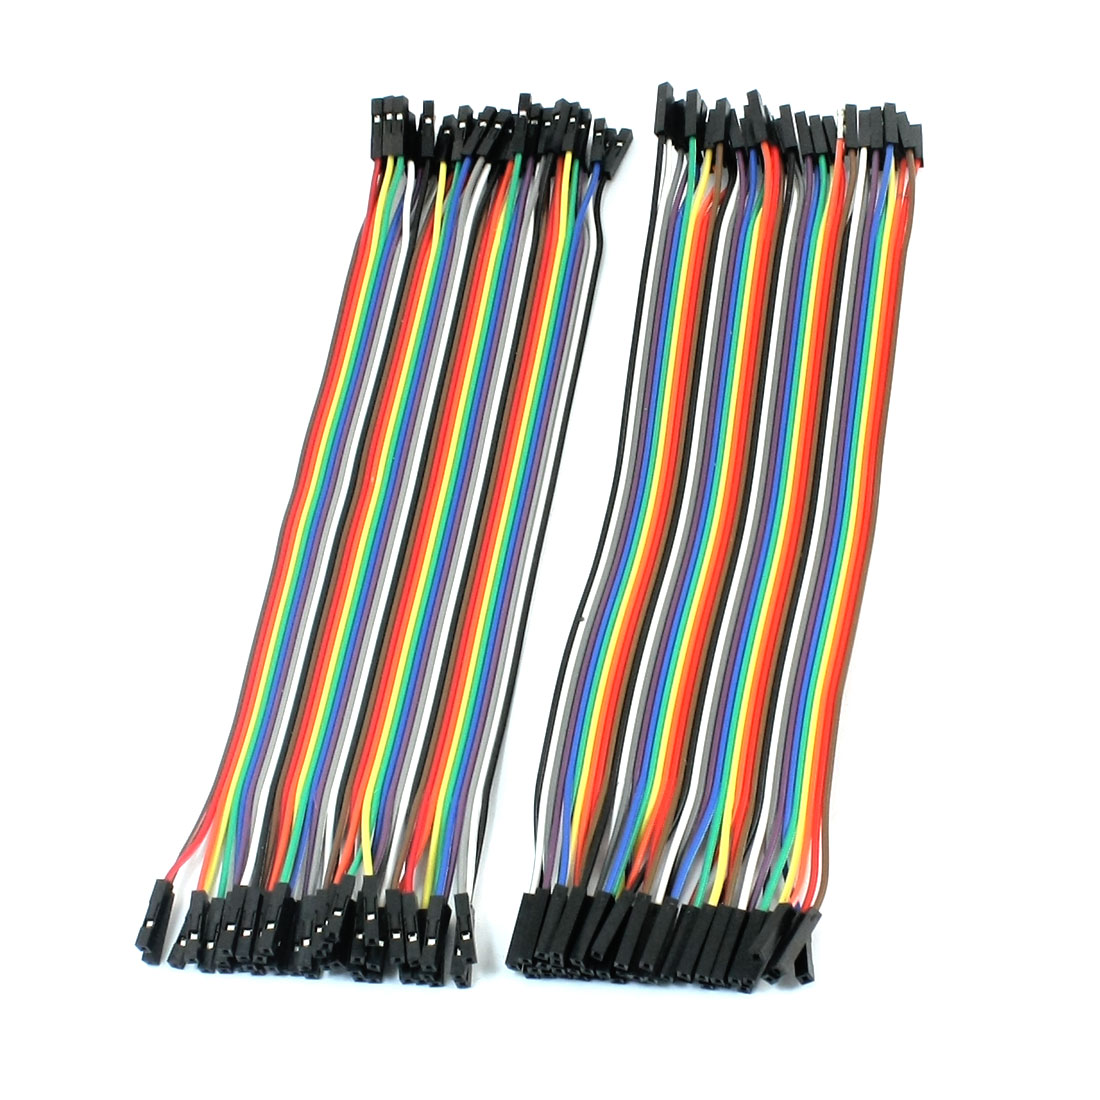 80pcs 20cm 2.54mm 1P-1P Female to Female F/F Connect Jumper Wire Cable Line